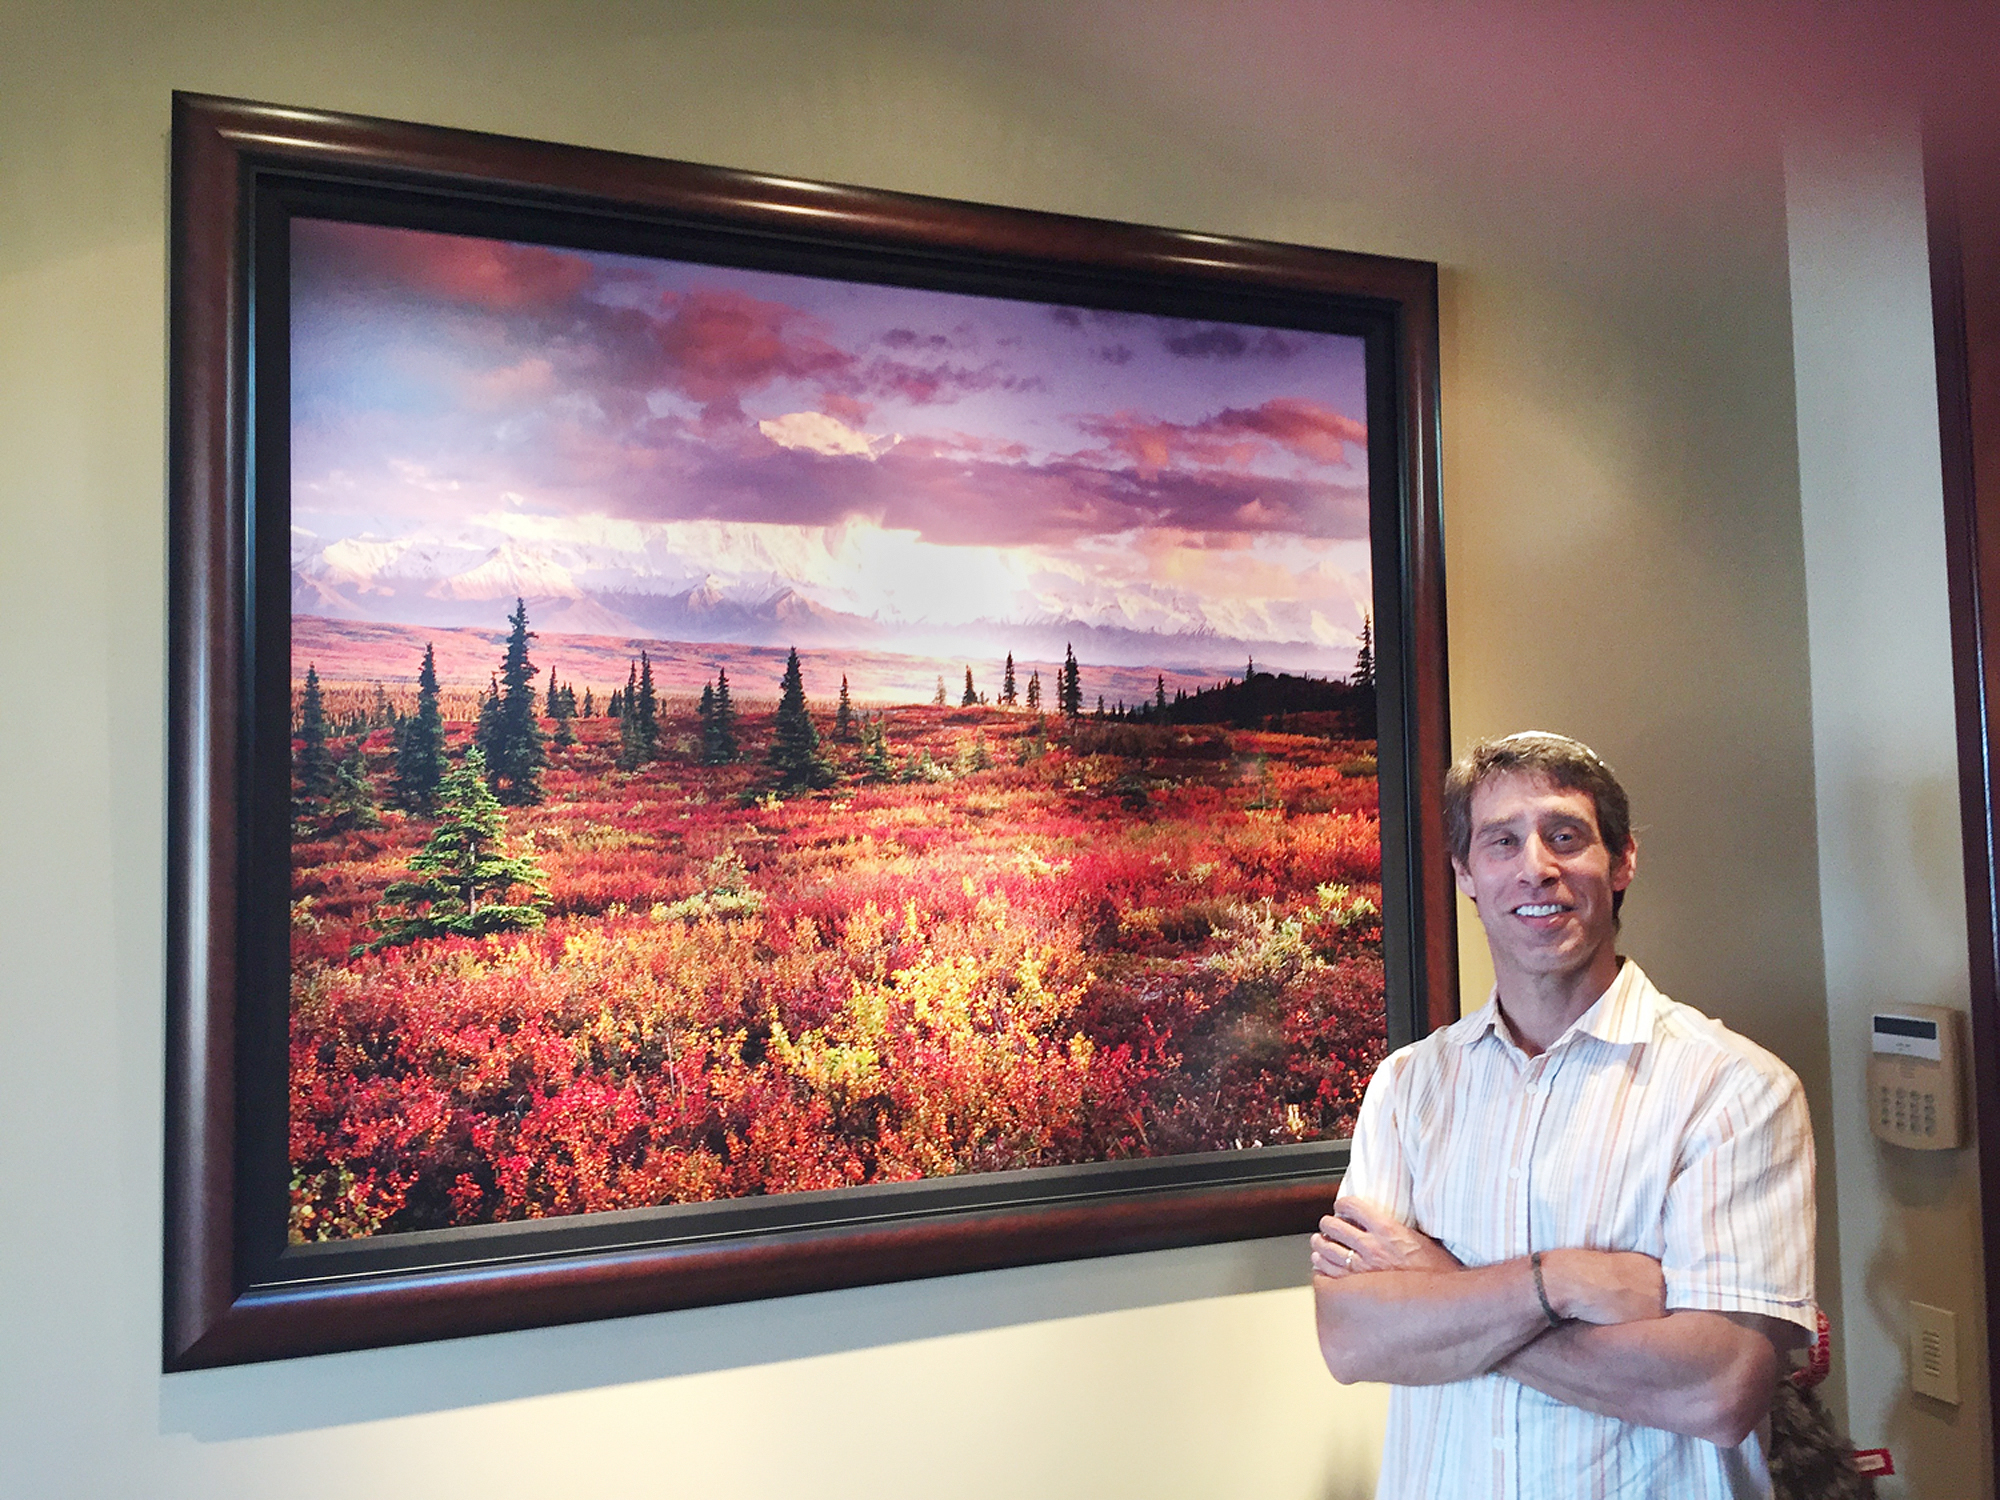 Jon Paul with a 40x50 inch (chromogenic) print on photographic paper in a collectors lakefront home.